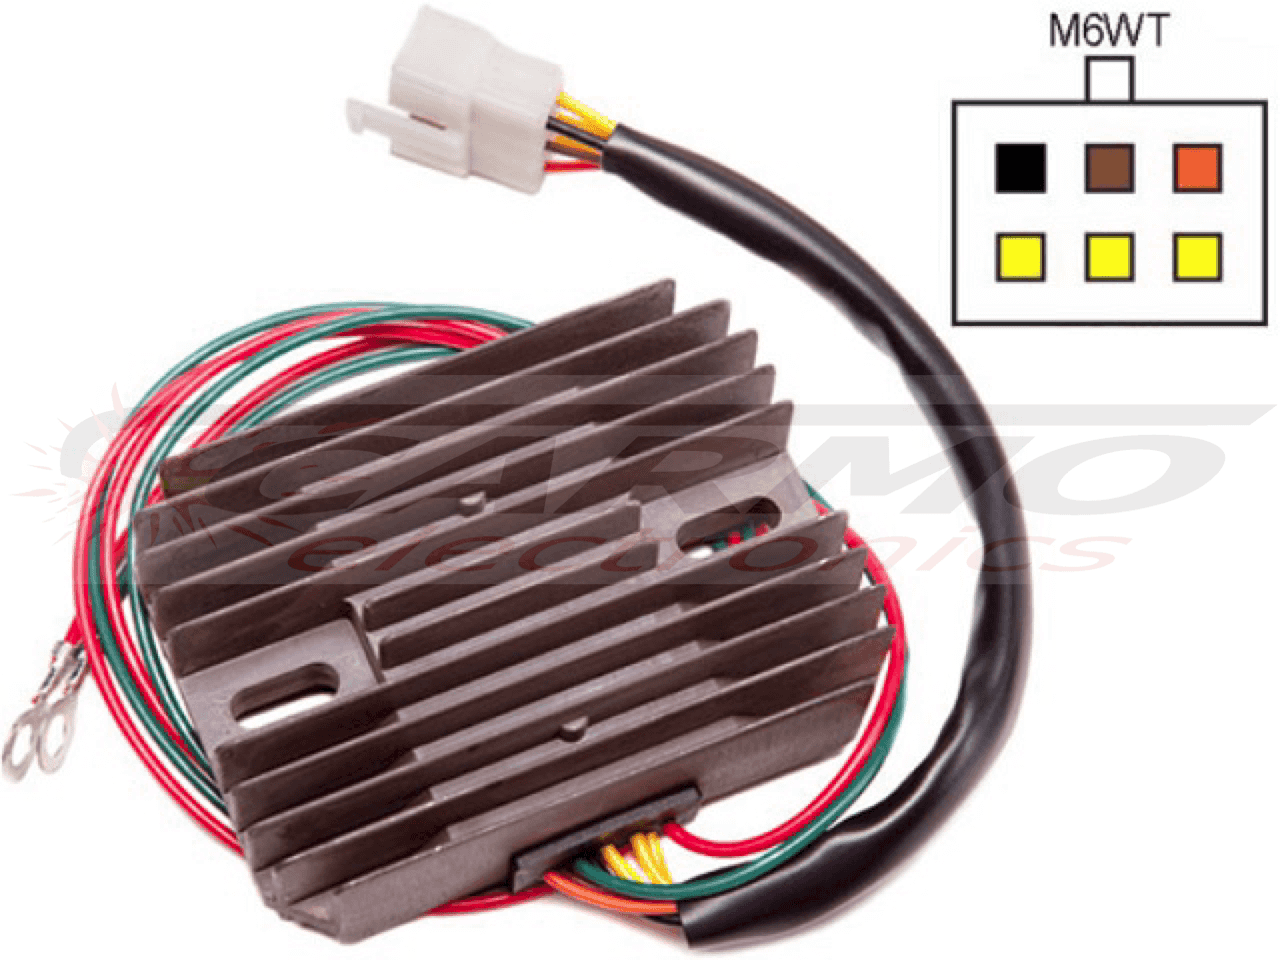 Carr451 14500 Carmo Electronics Wiring Harnesses For The Moto Guzzi 850 T3 California Agrandir Limage